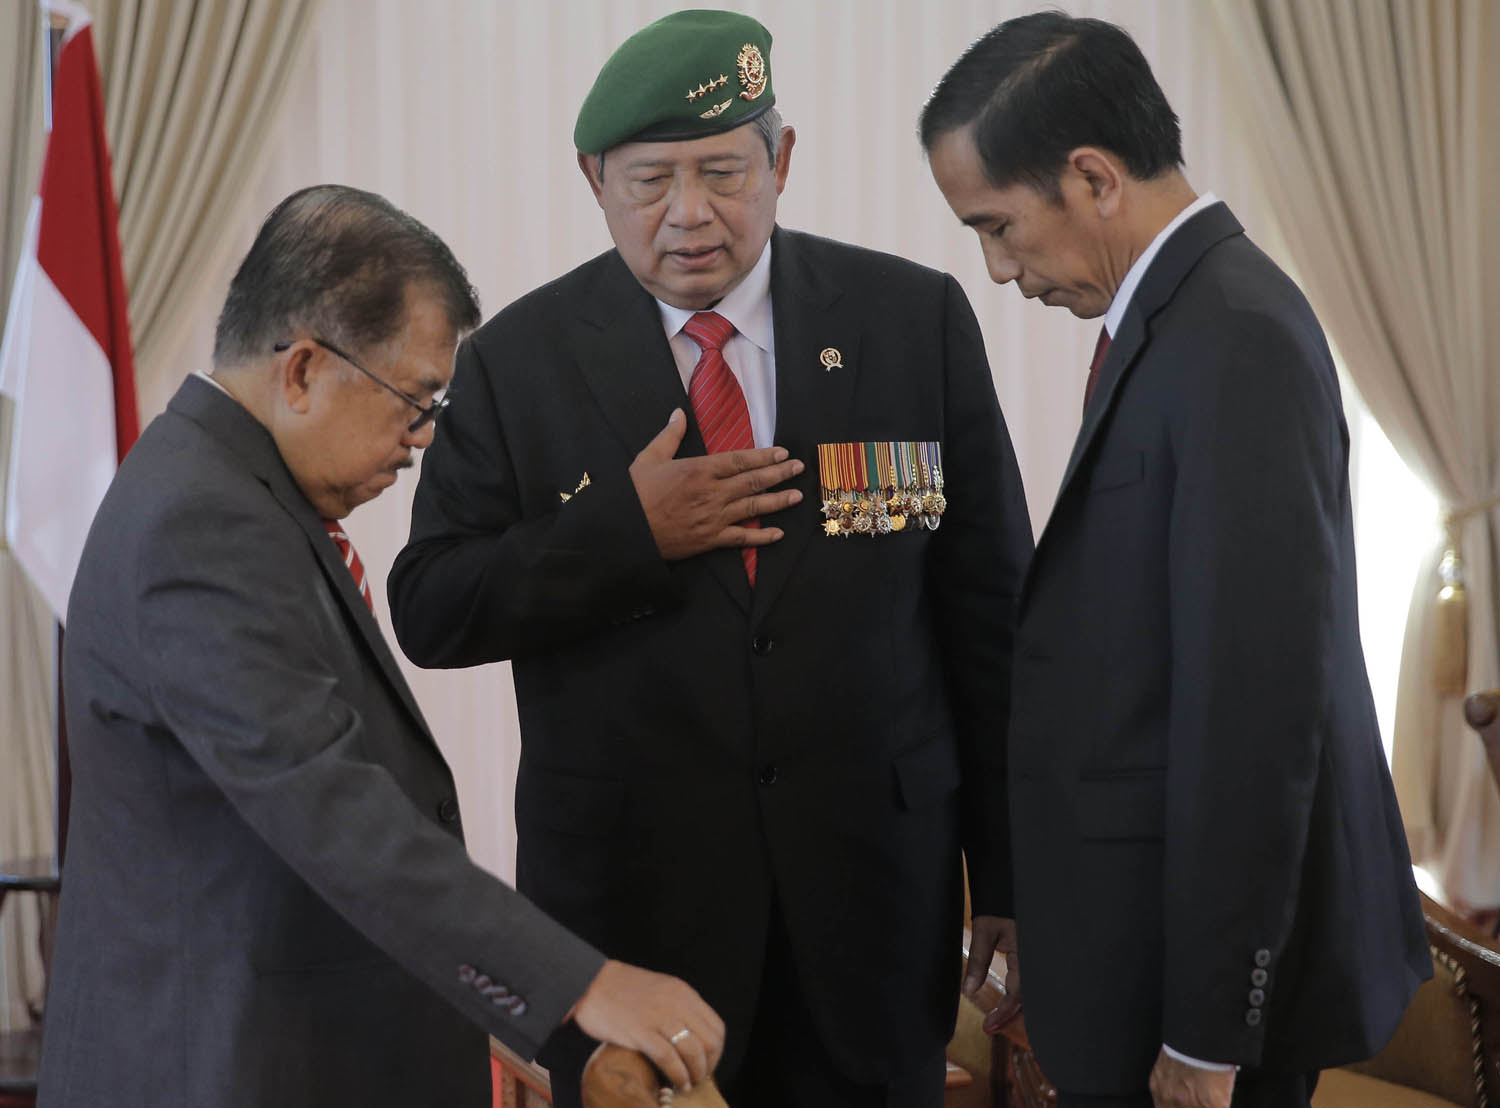 President SBY will hand over the presidency to Joko Widodo on Monday.